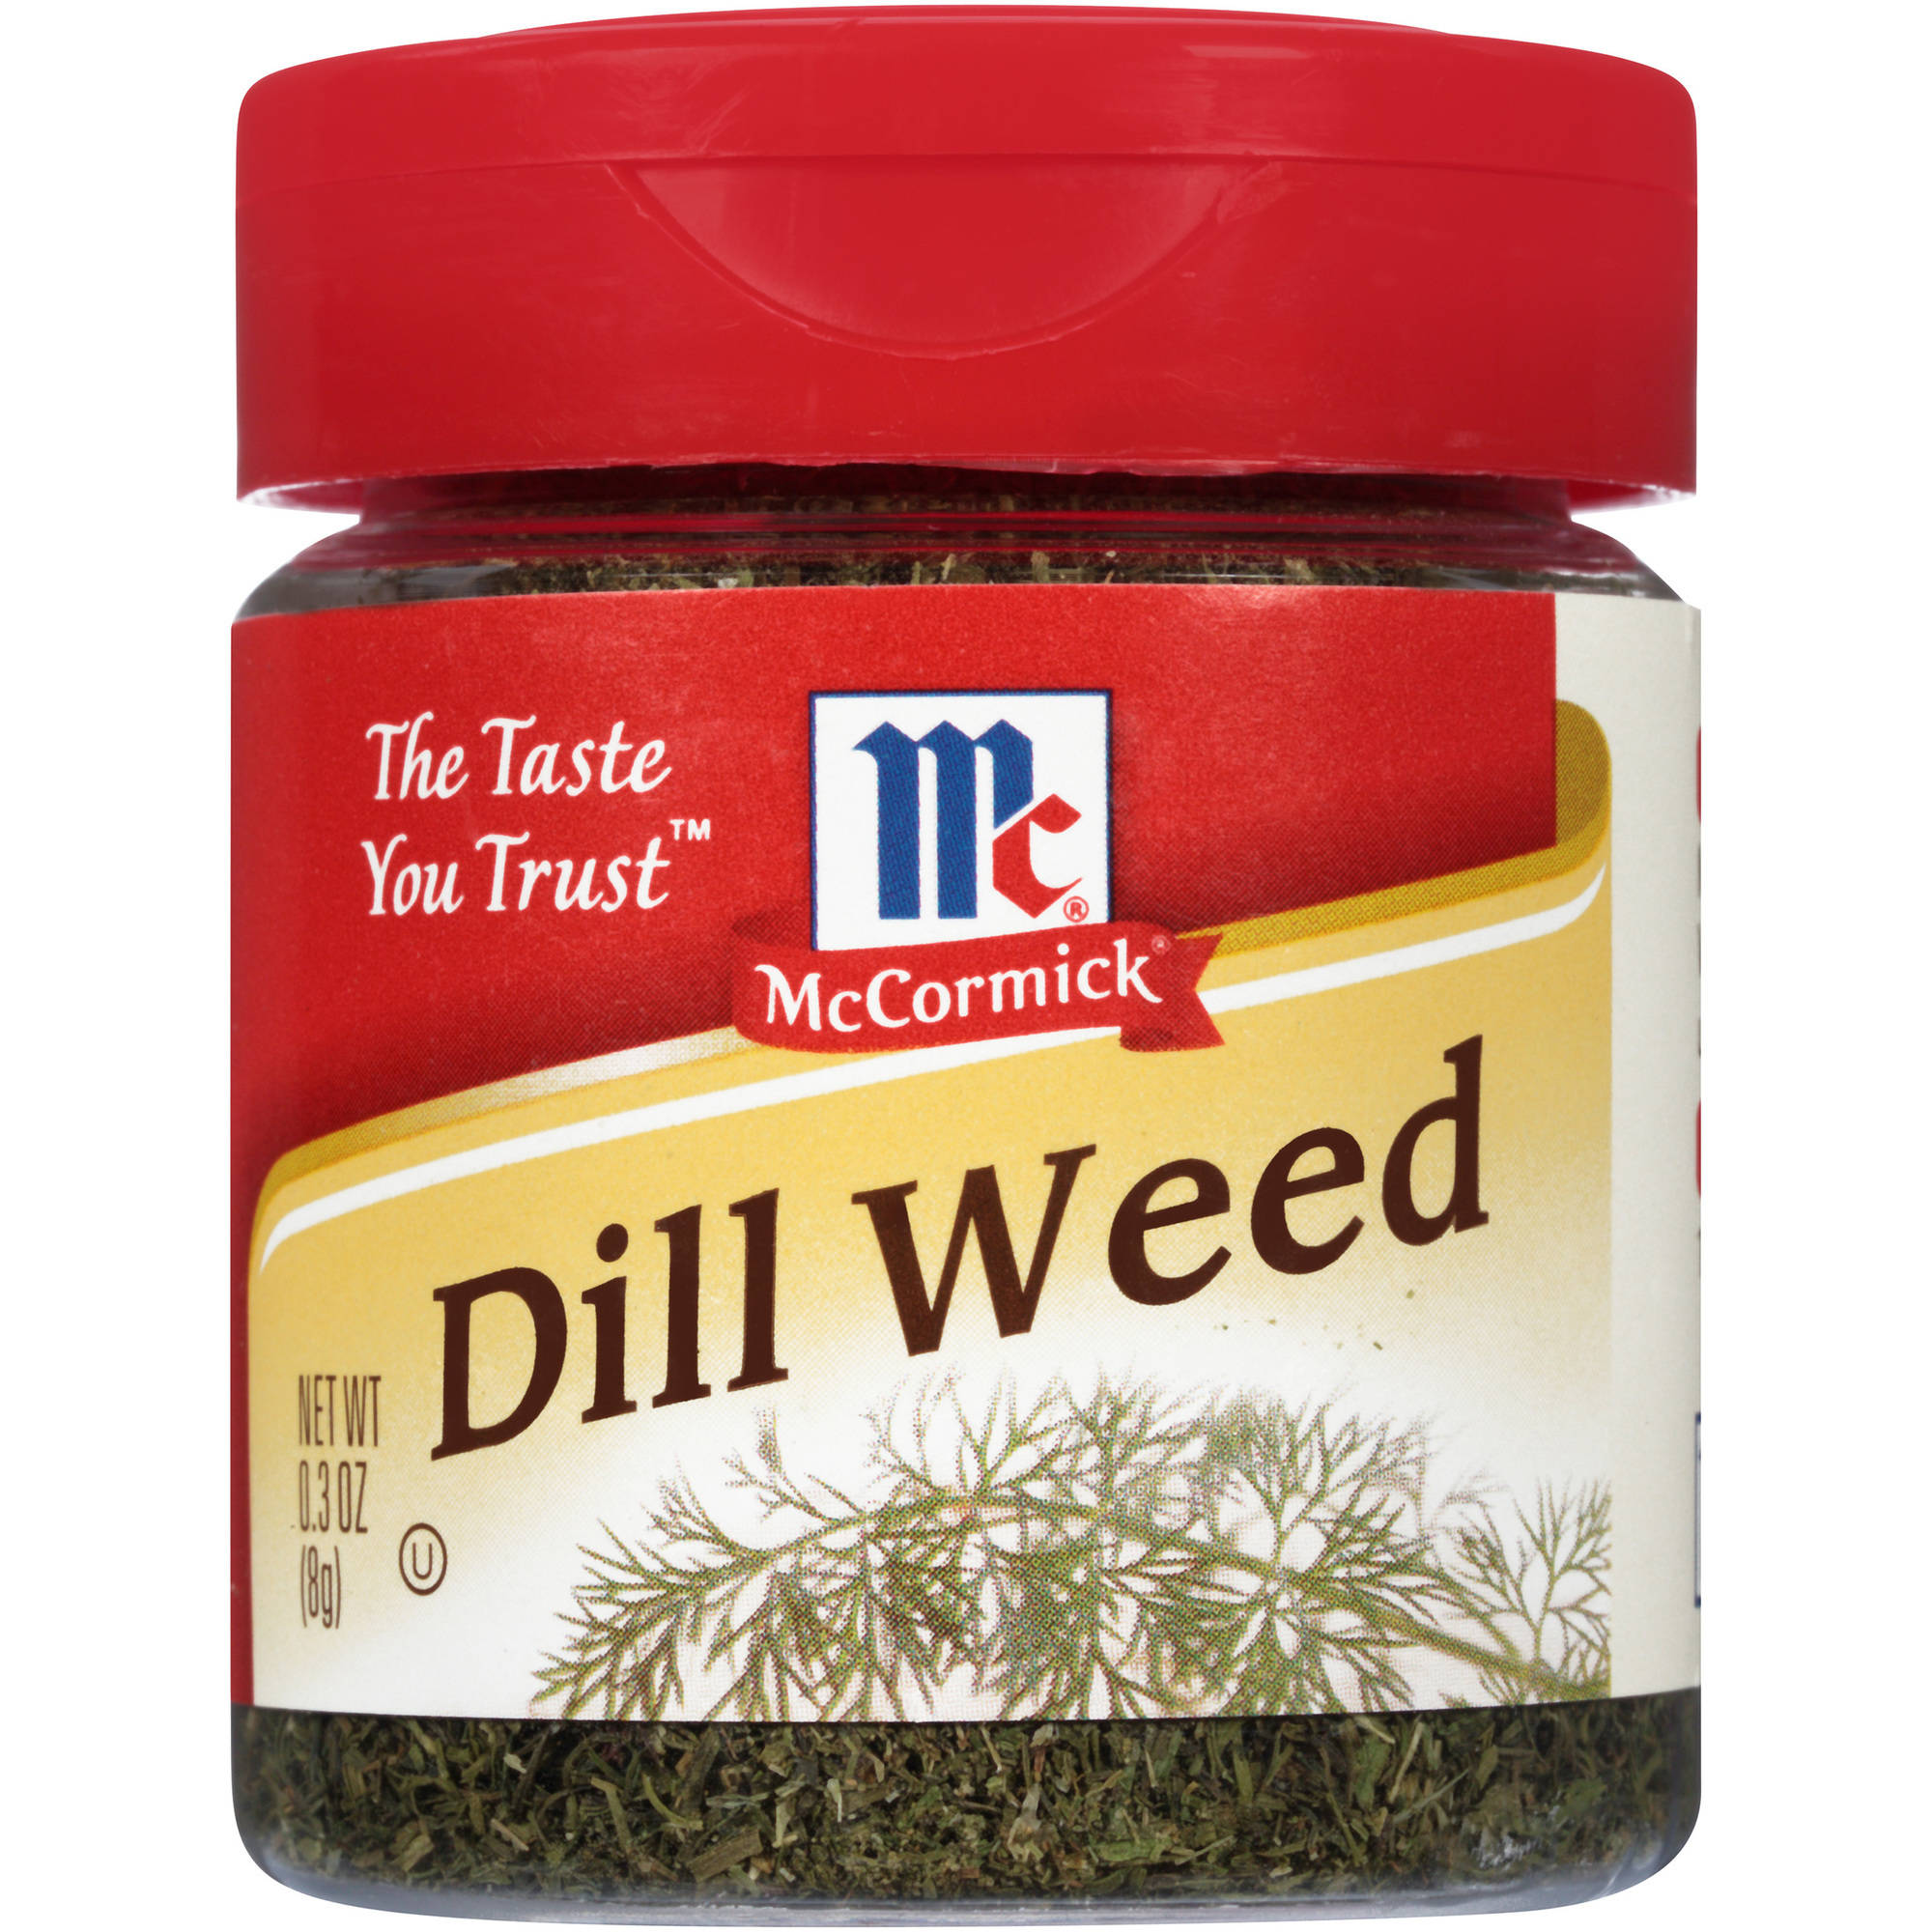 McCormick Dill Weed, 0.30 oz